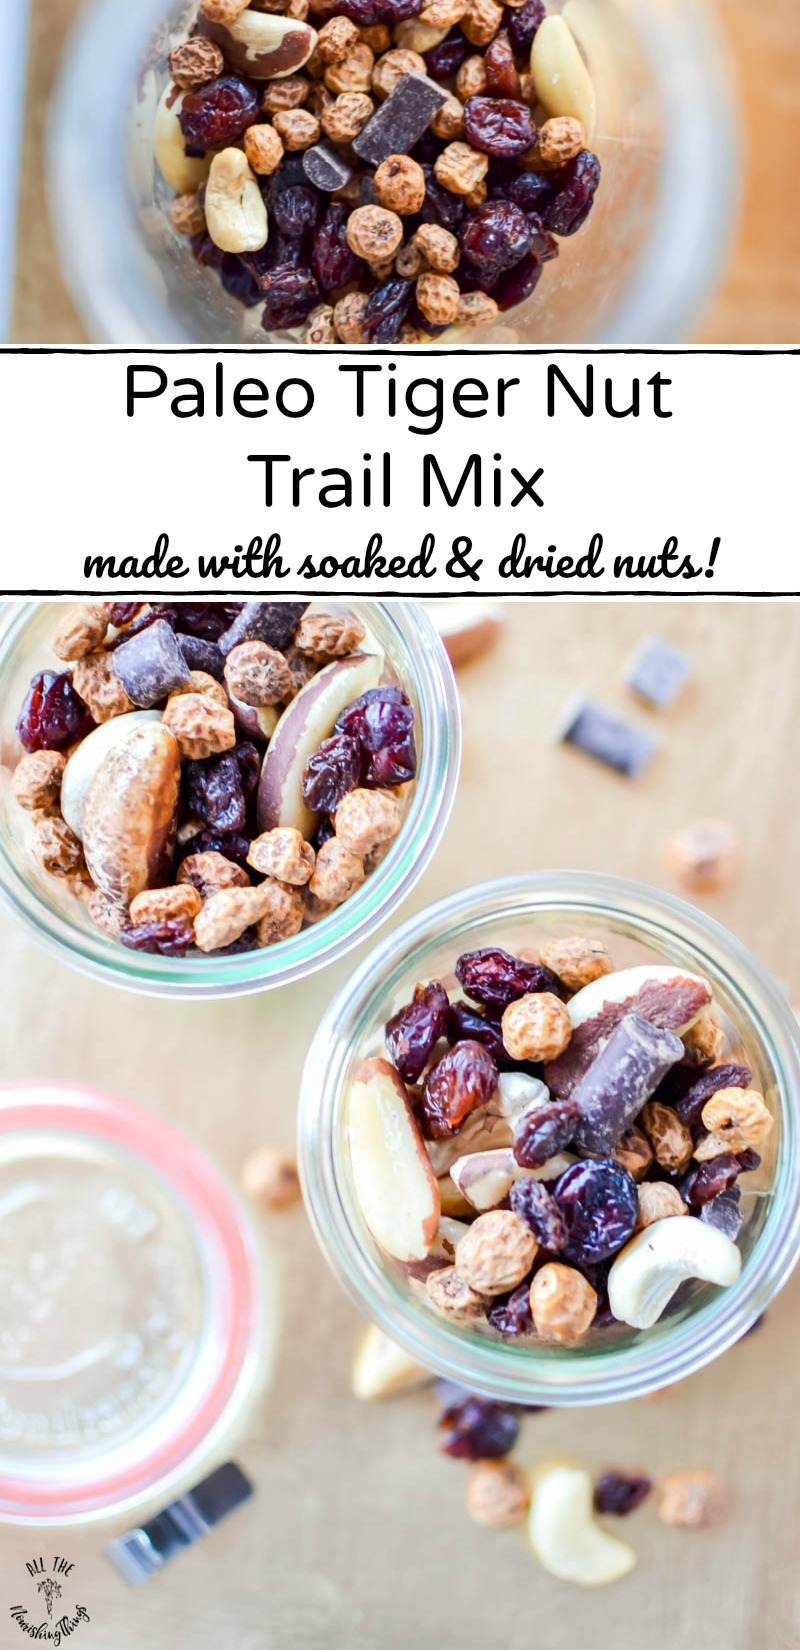 2 images of paleo tiger nut trail mix with text overlay between the images